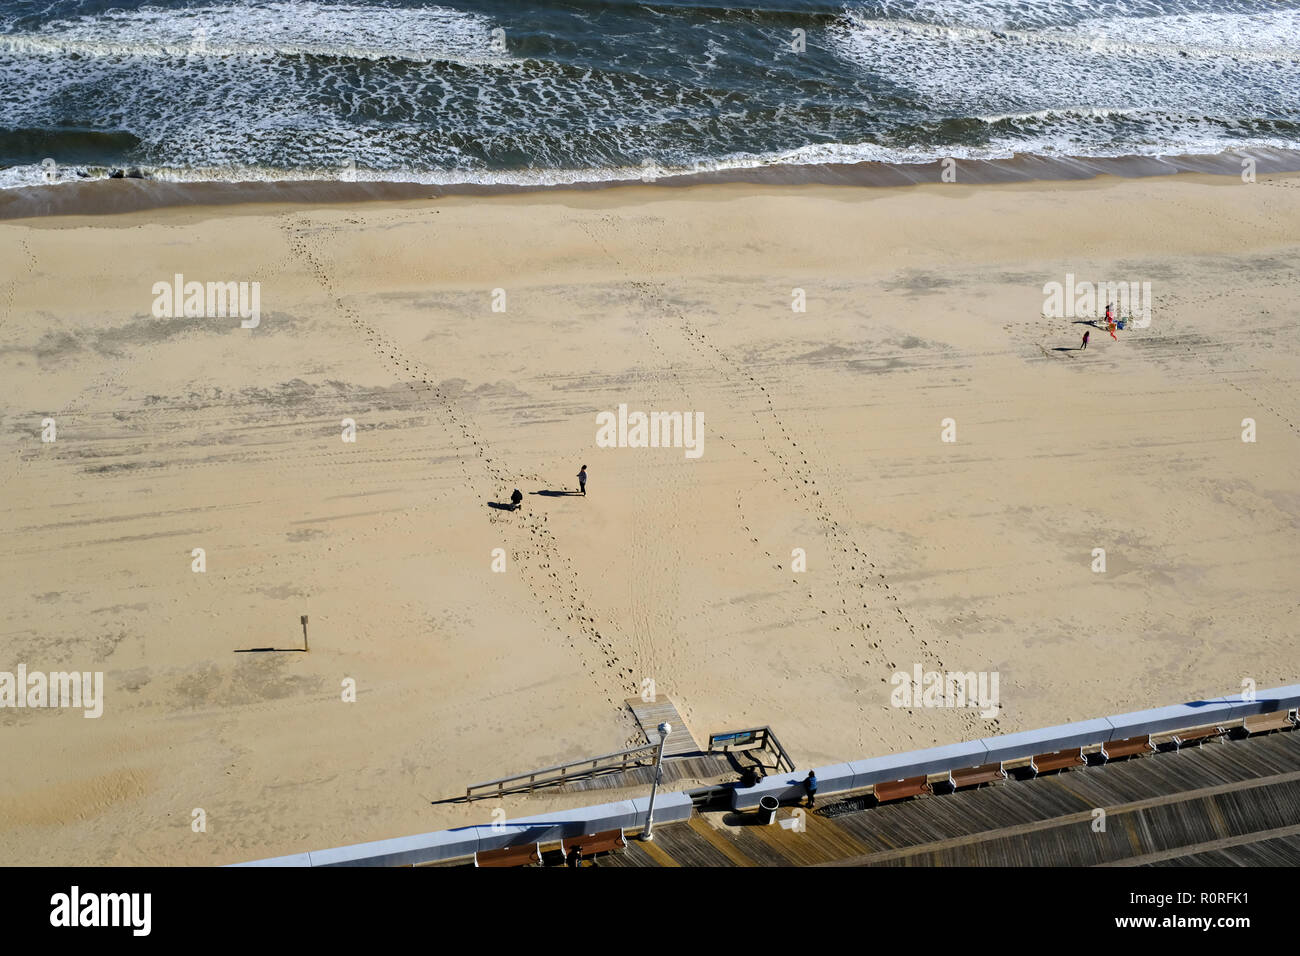 People on the beach at a distance in Ocean City, Maryland - Stock Image